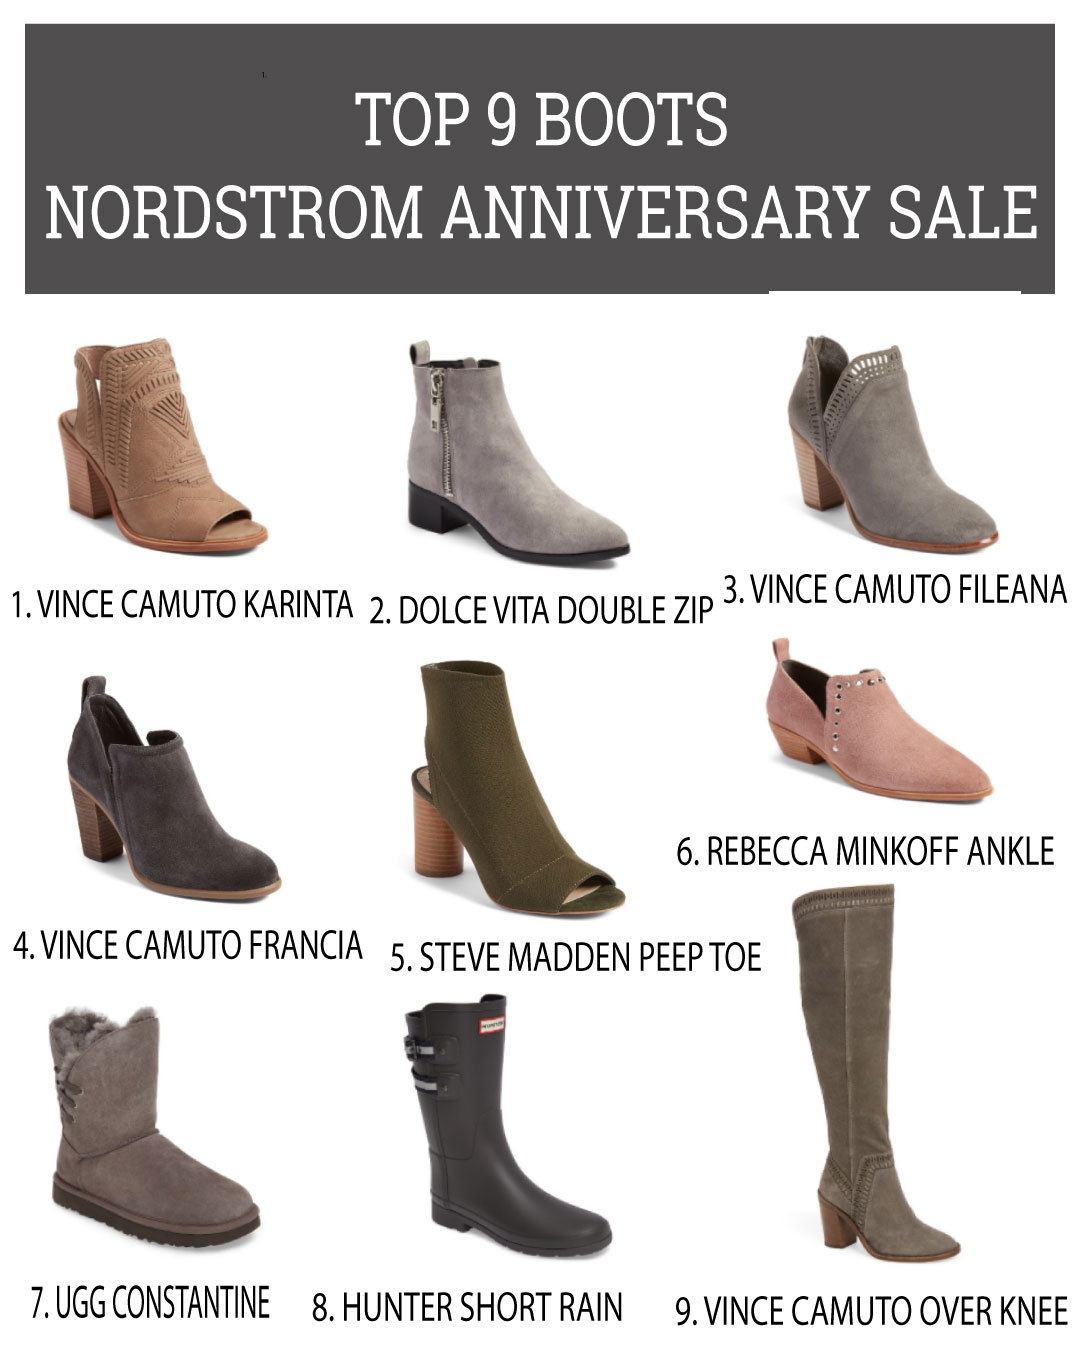 2017 Nordstrom Anniversary Sale Best Boots- Life By Lee